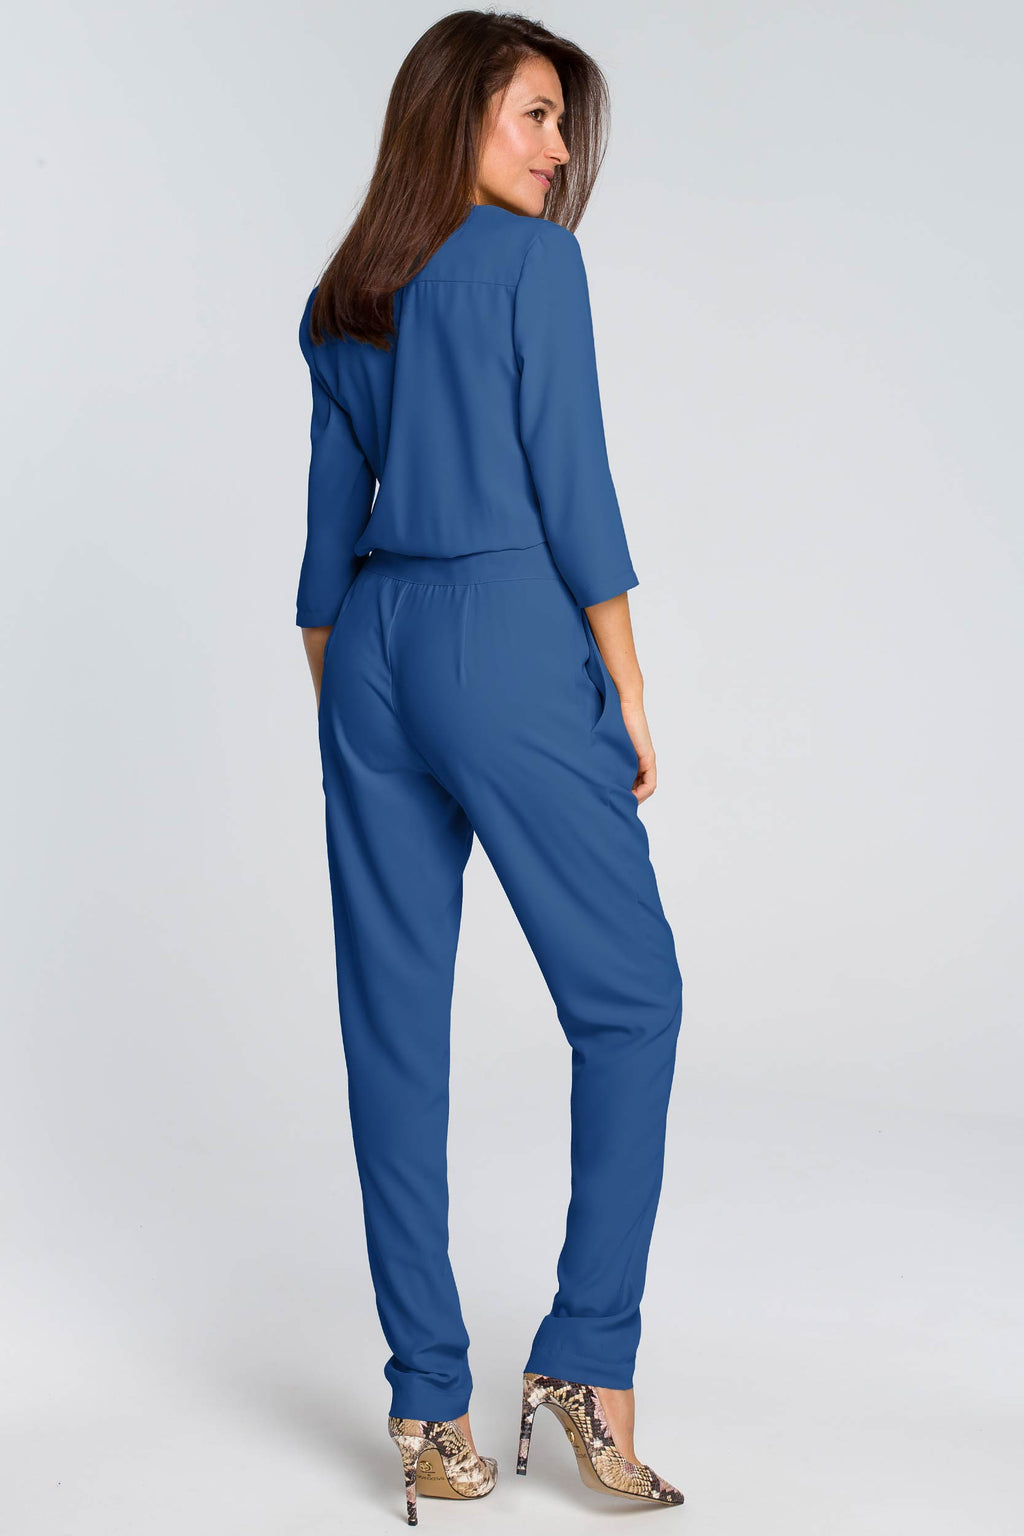 Blue Button Up Jumpsuit - So Chic Boutique